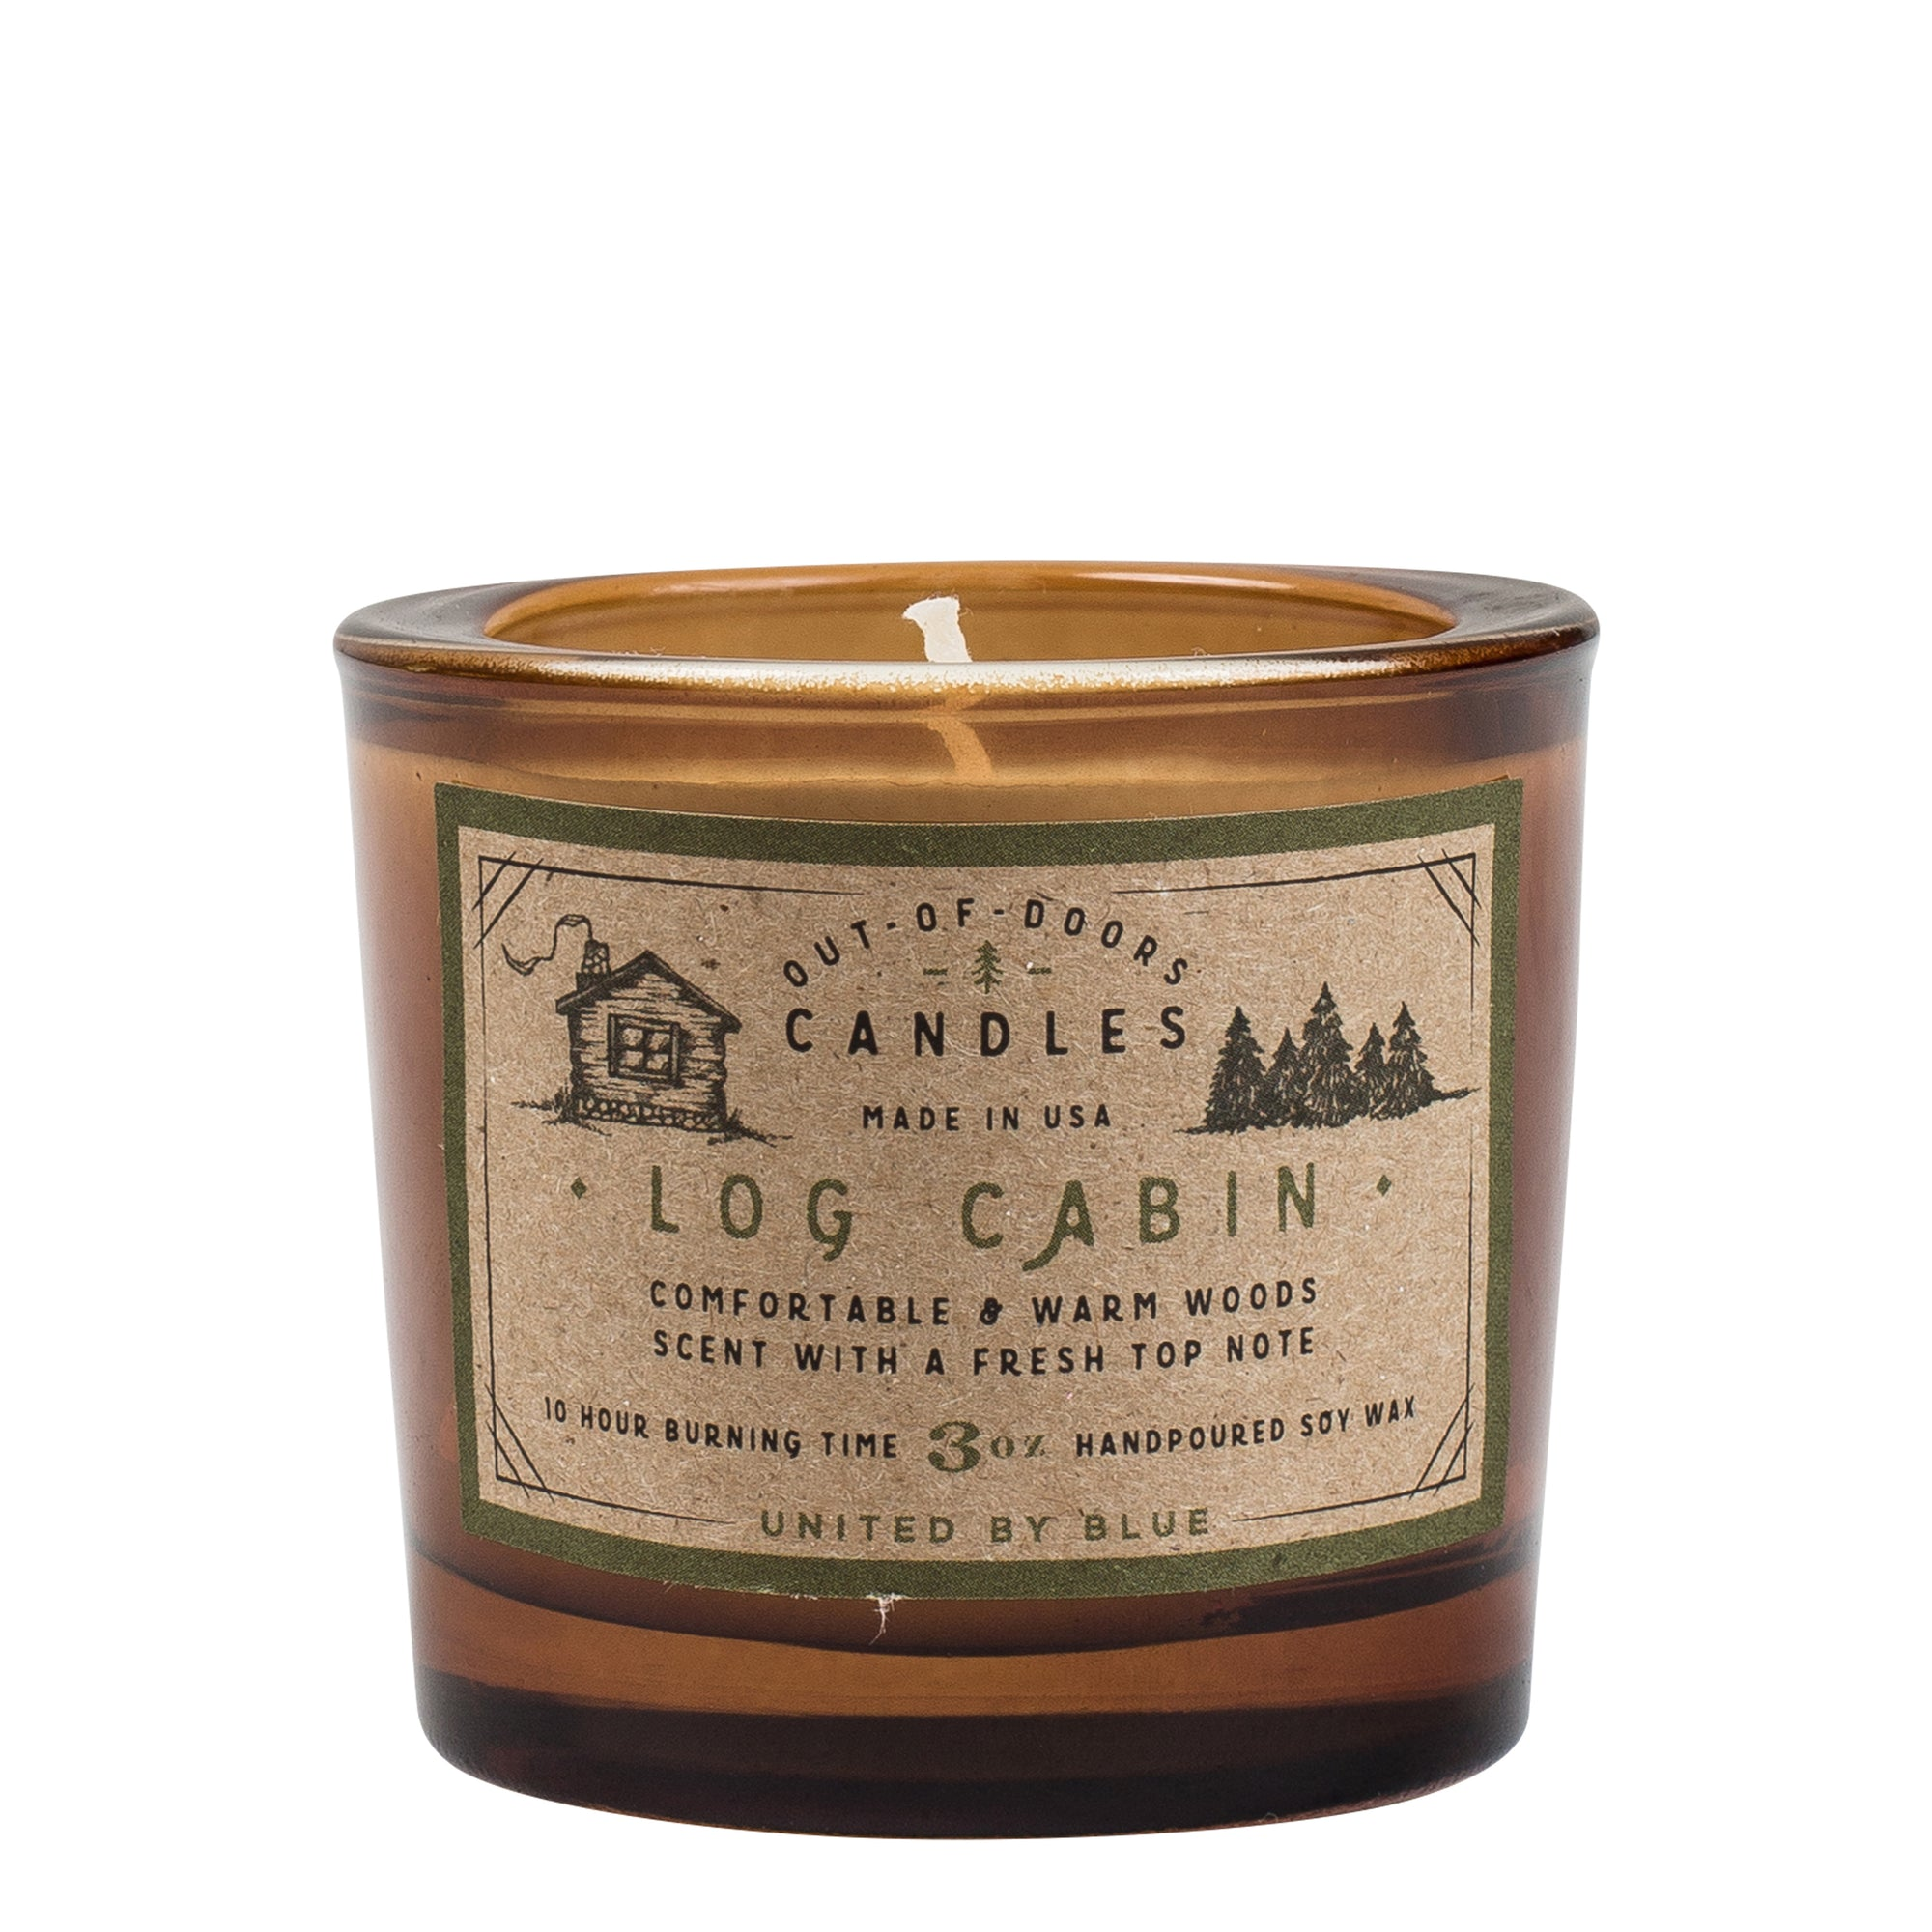 United By Blue 3 oz. Log Cabin Out-of-Doors Candle